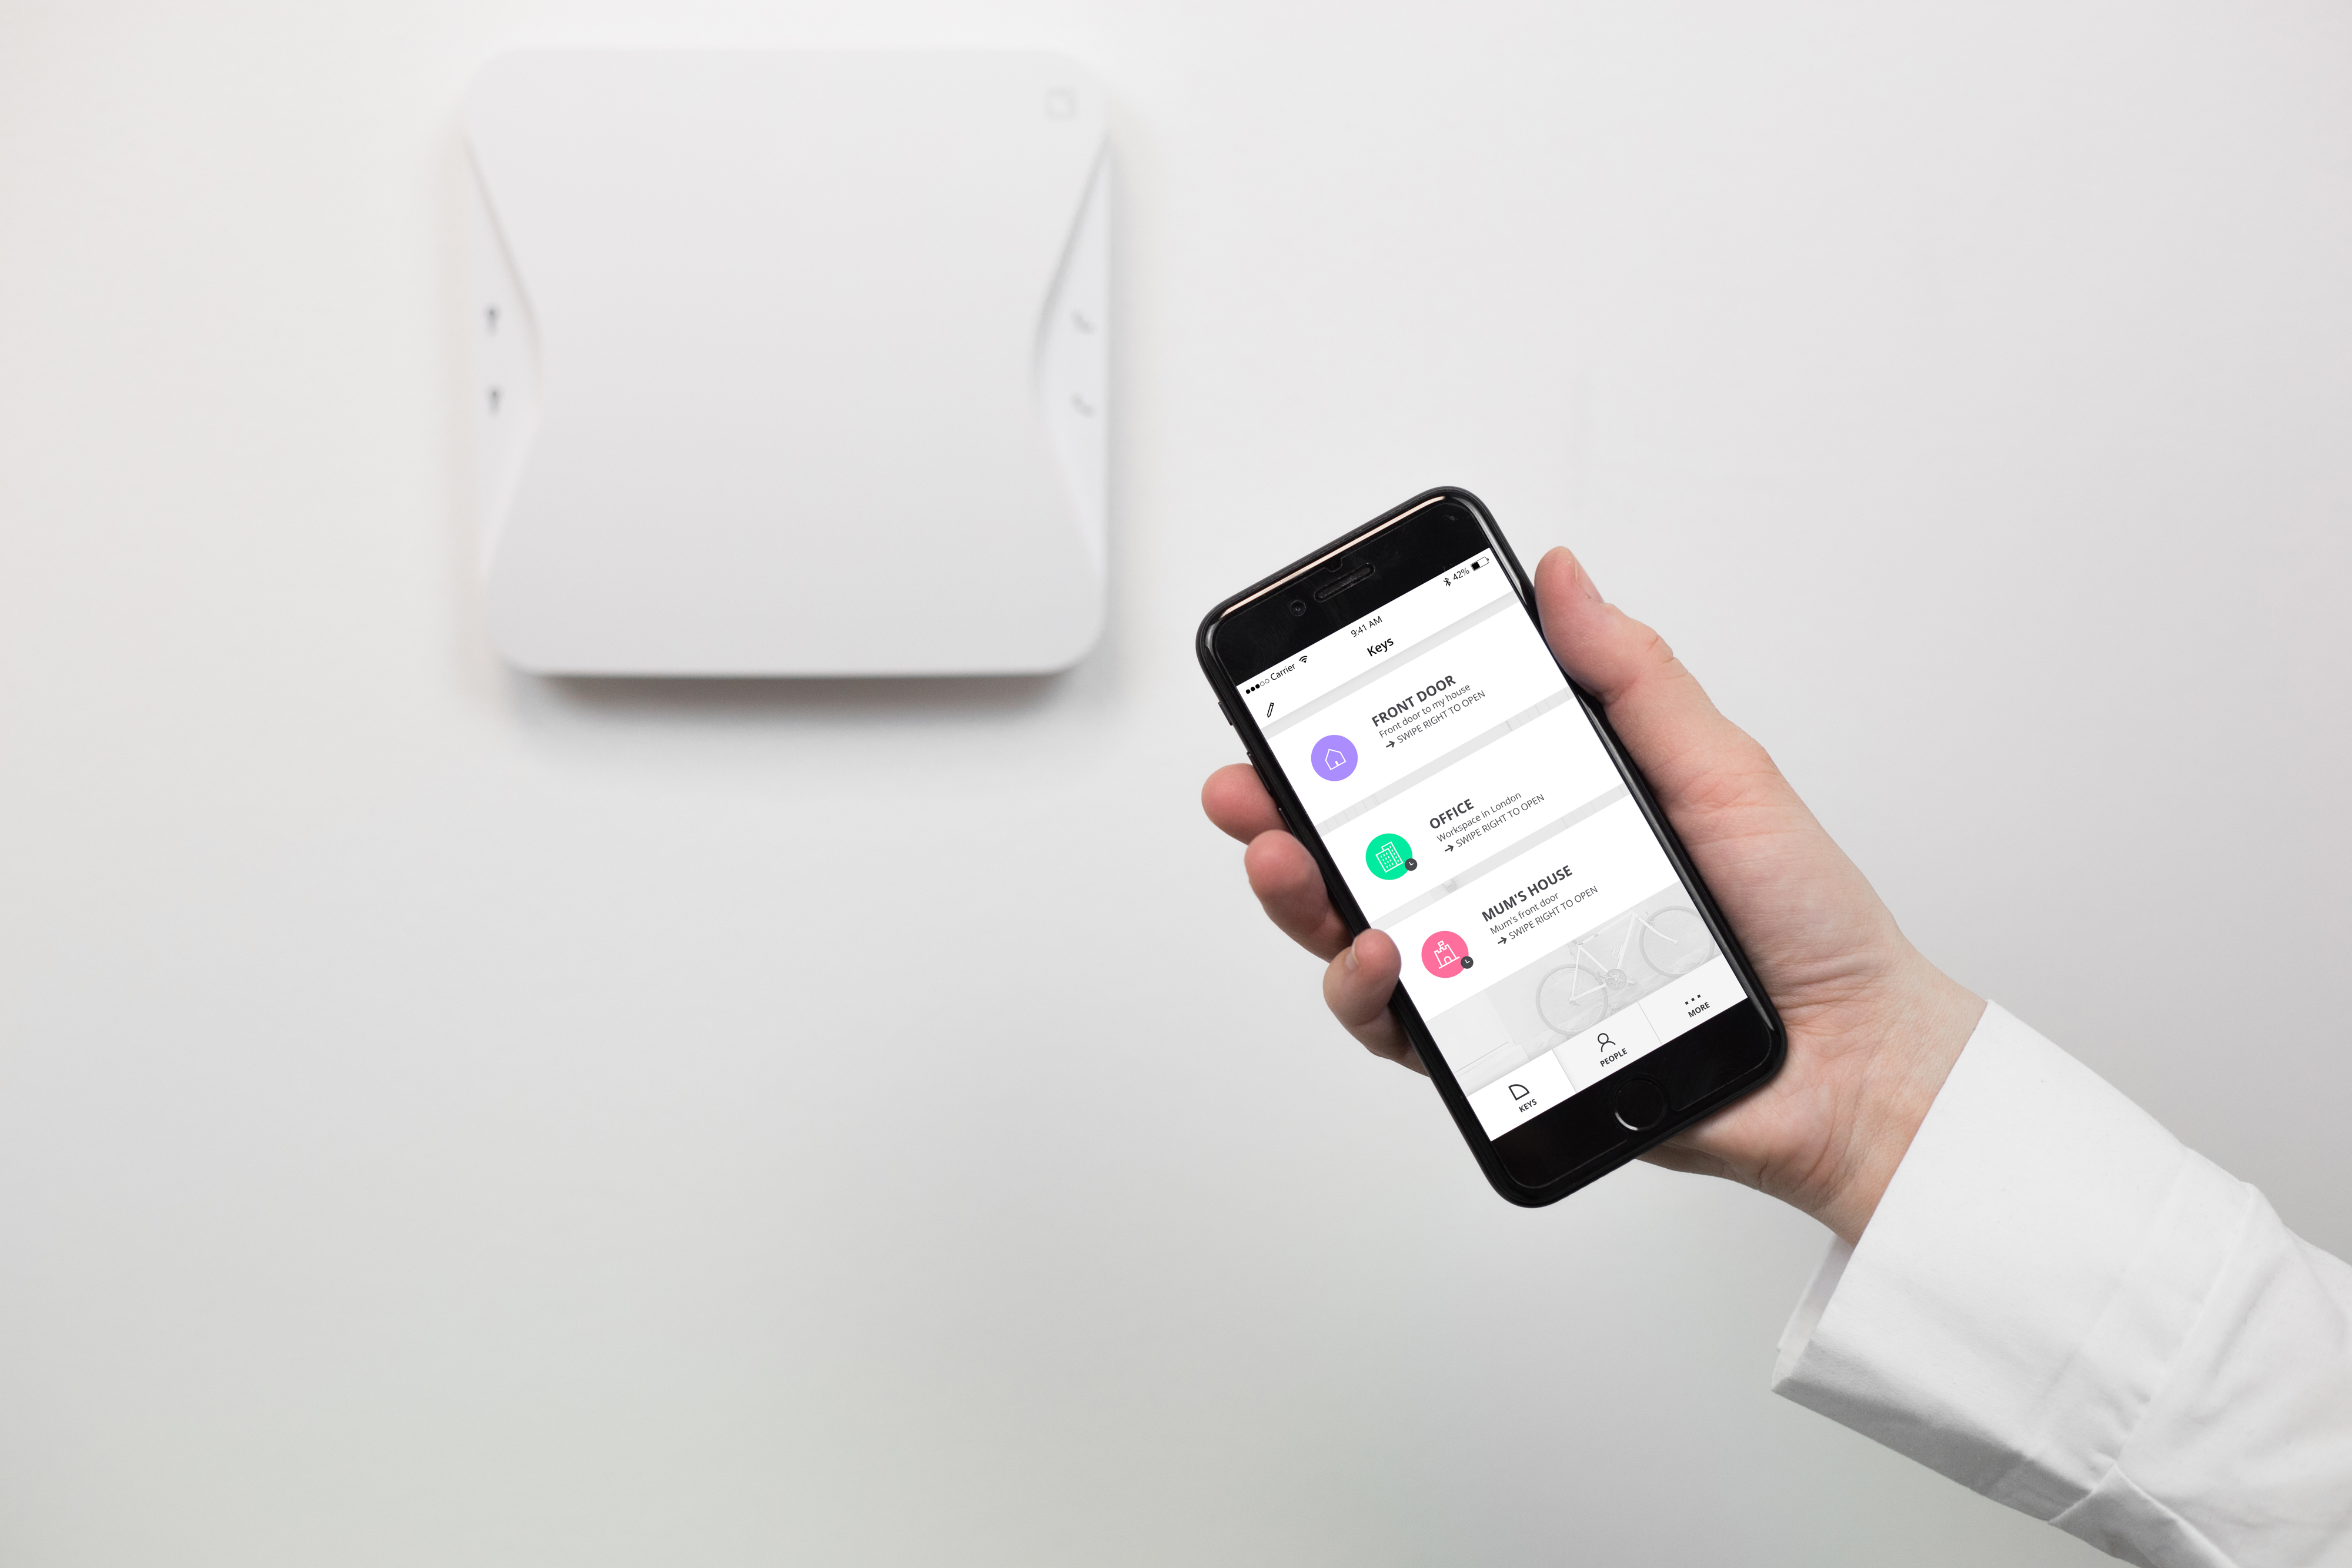 Klevio launches its smart intercom and app that lets you open doors remotely